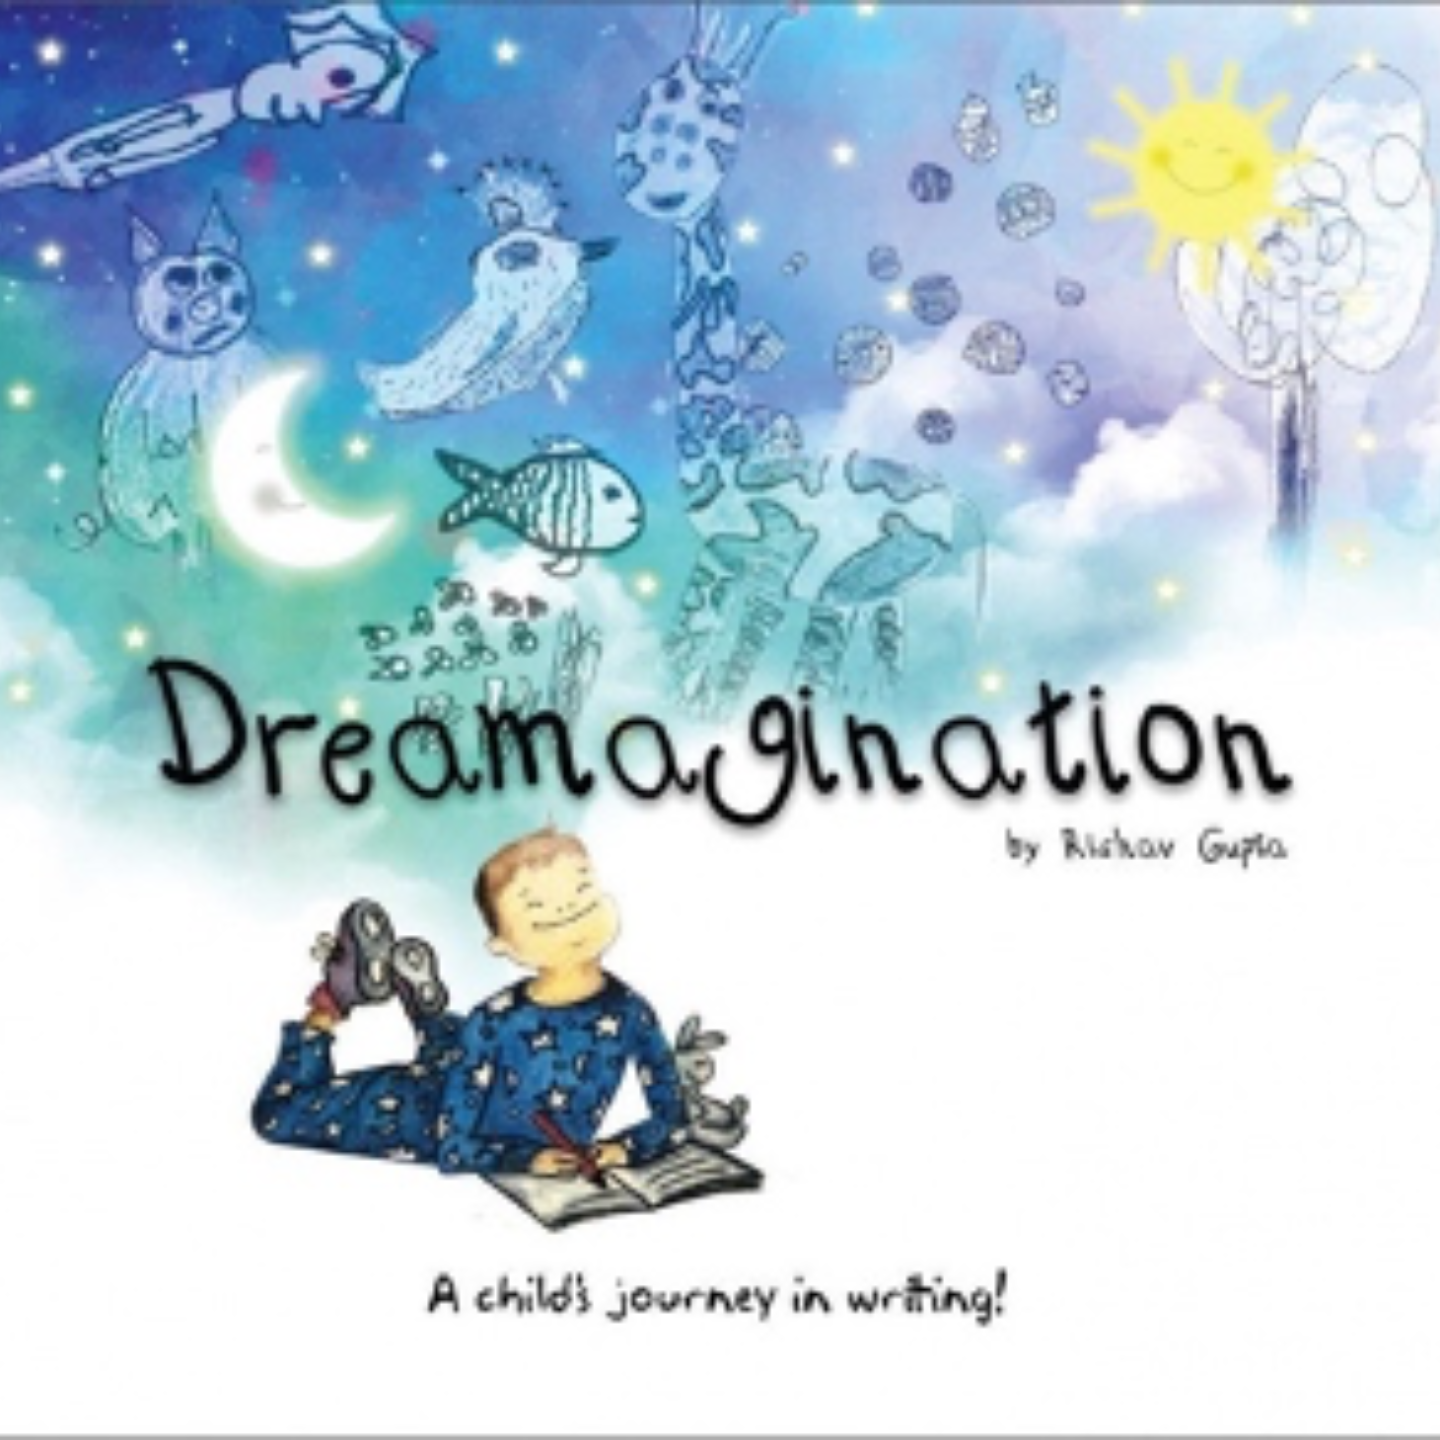 Dreamagination by Rishav Gupta